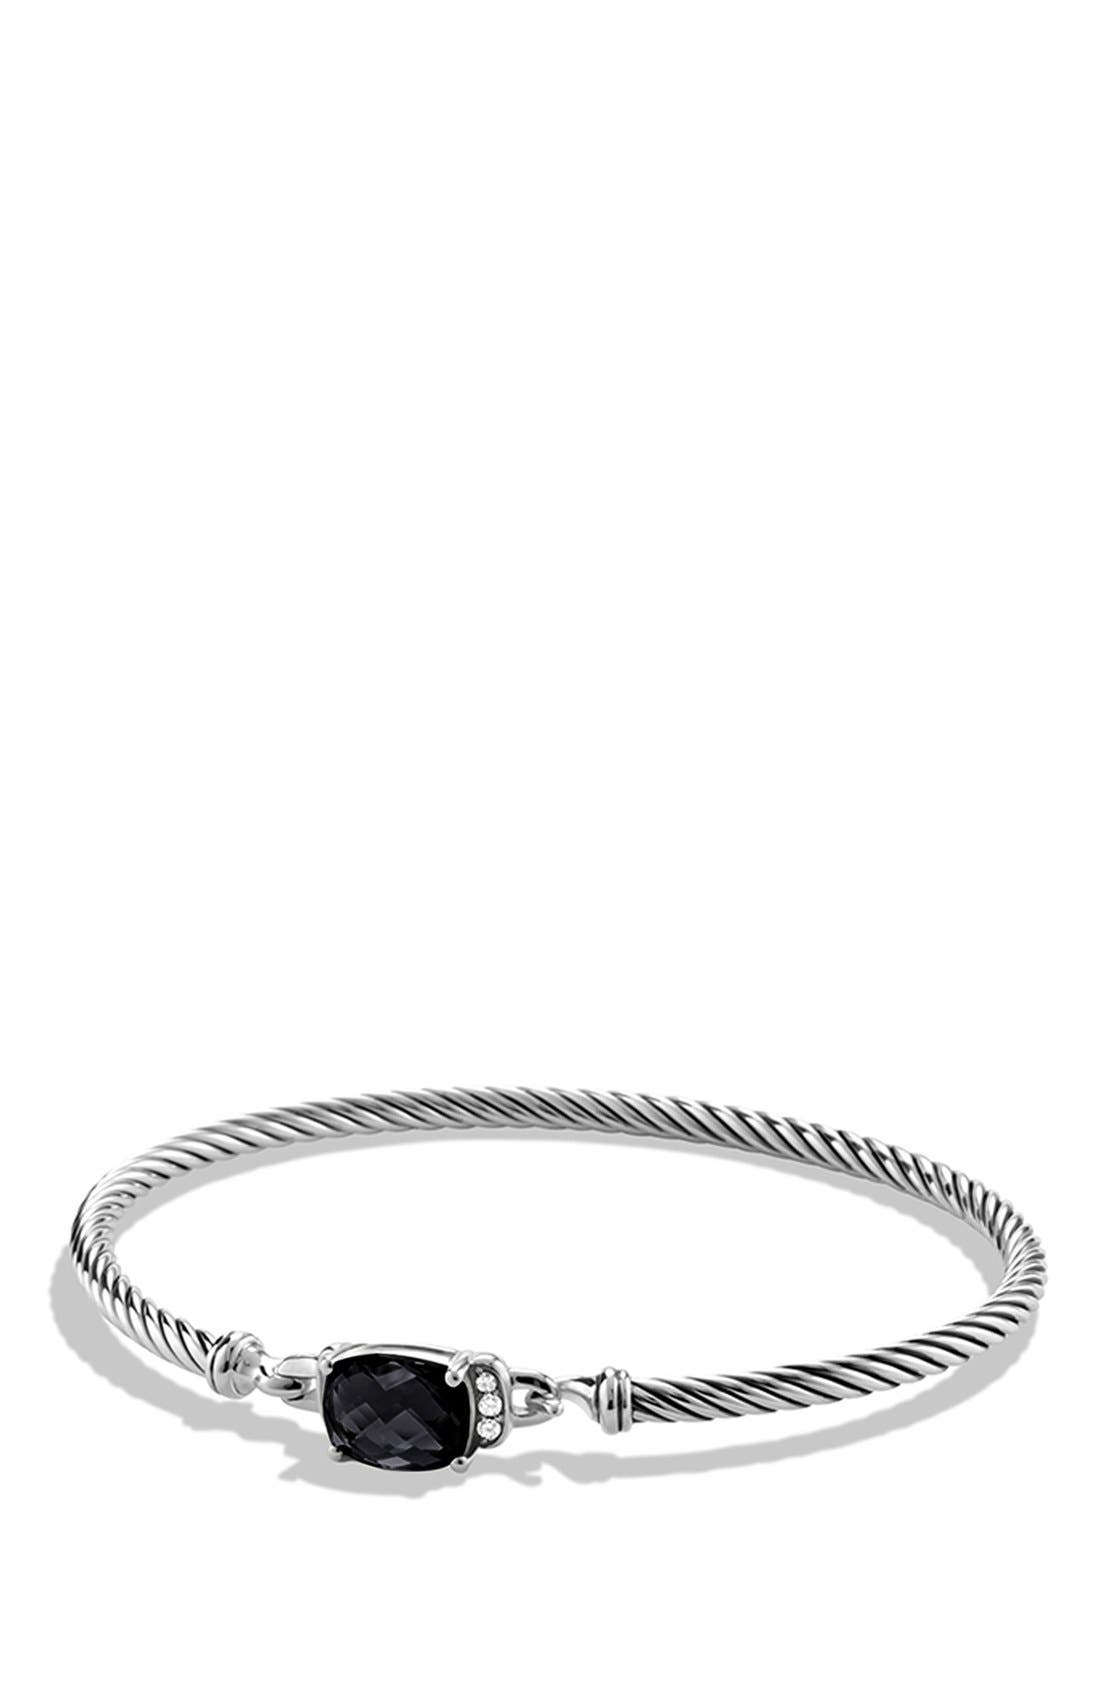 Alternate Image 1 Selected - David Yurman 'Petite Wheaton' Bracelet with Semiprecious Stone & Diamonds